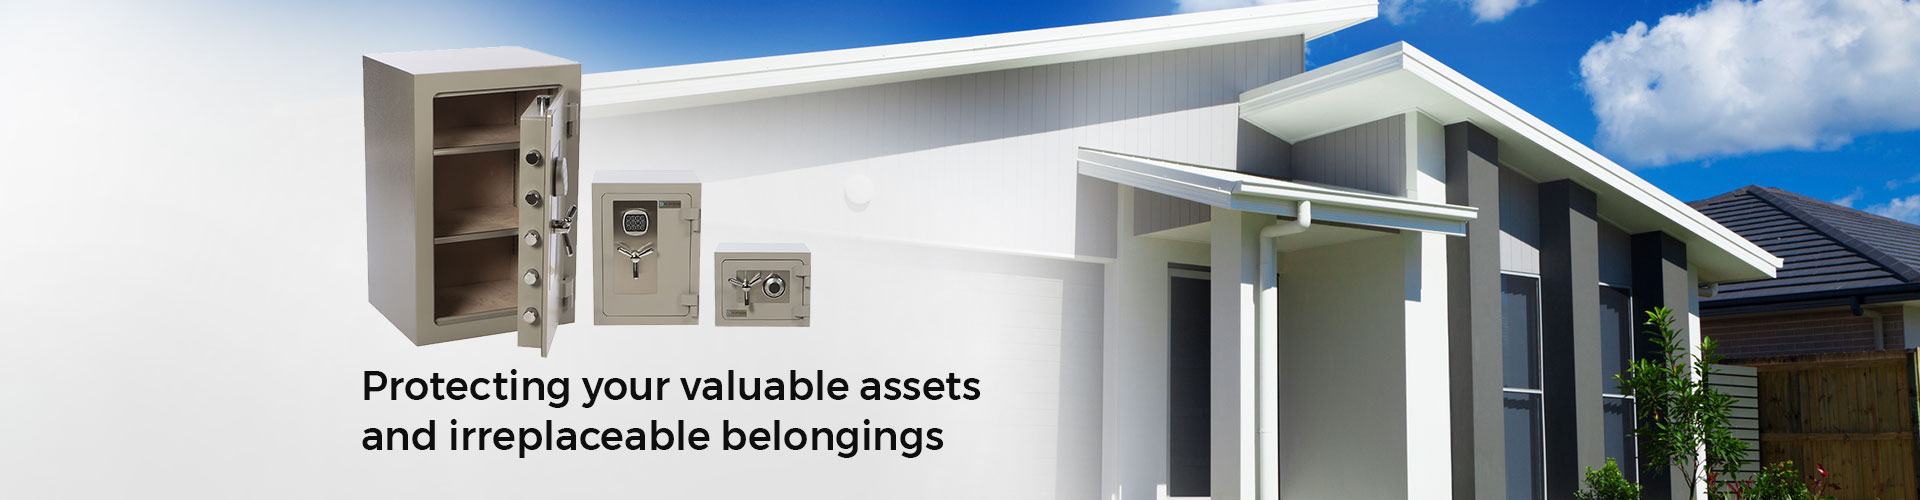 Protecting your valuable assets and irreplaceable belongings